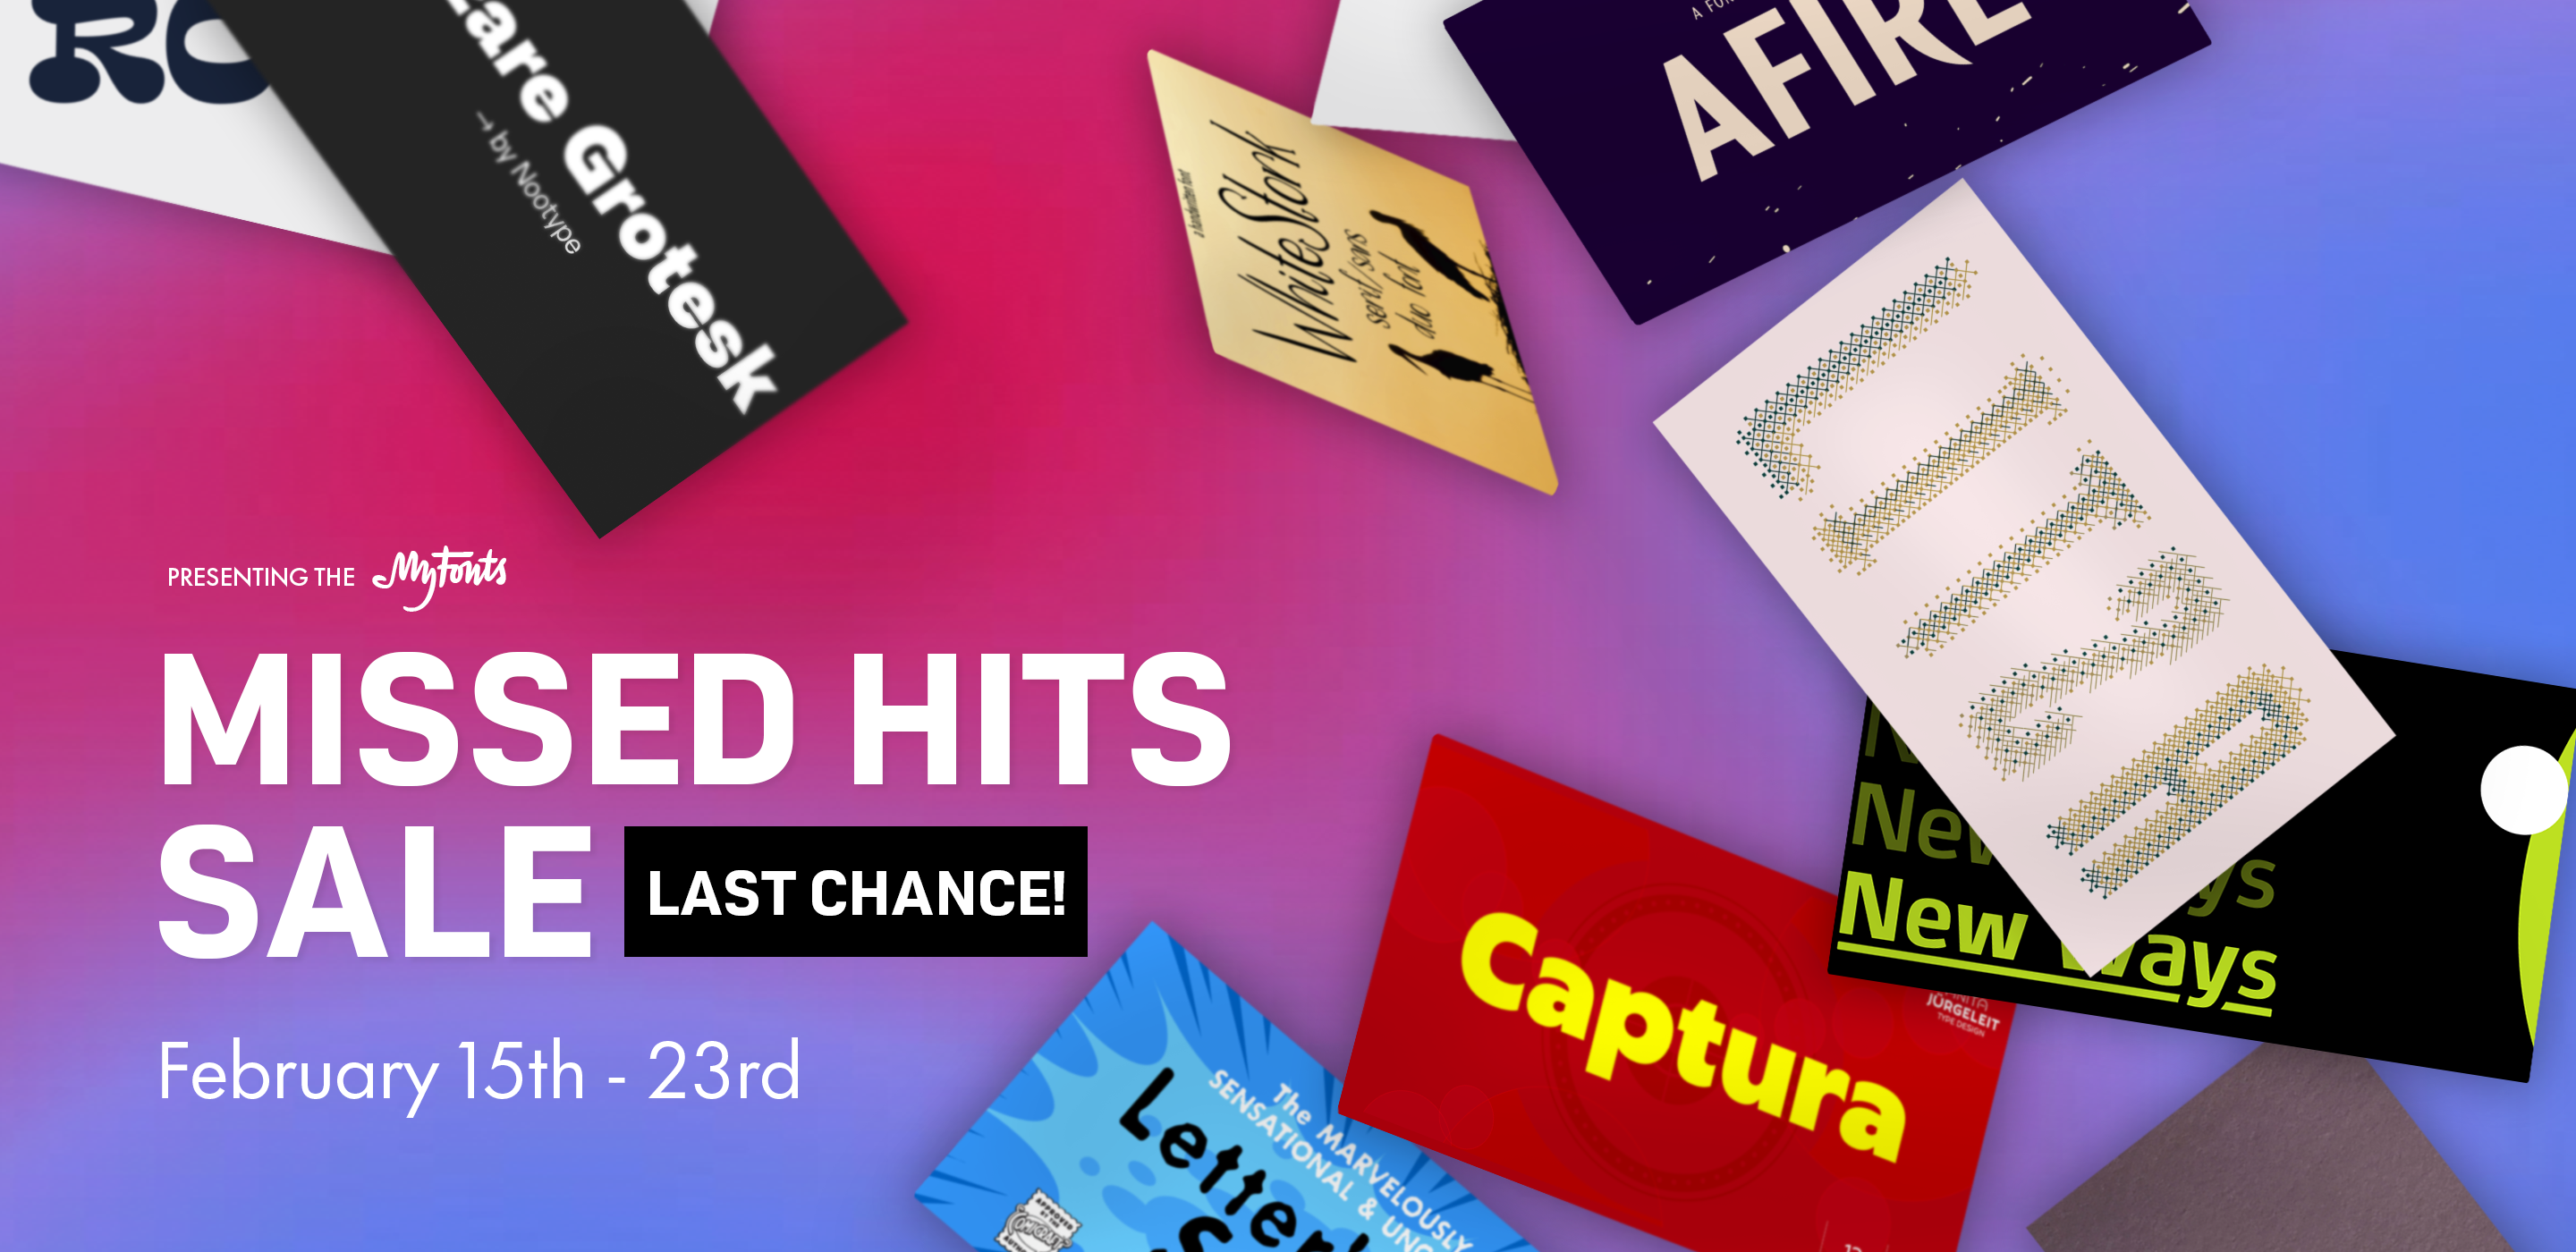 LAST CHANCE! Missed Hits SALE - Ends Tonight - Shop Now!